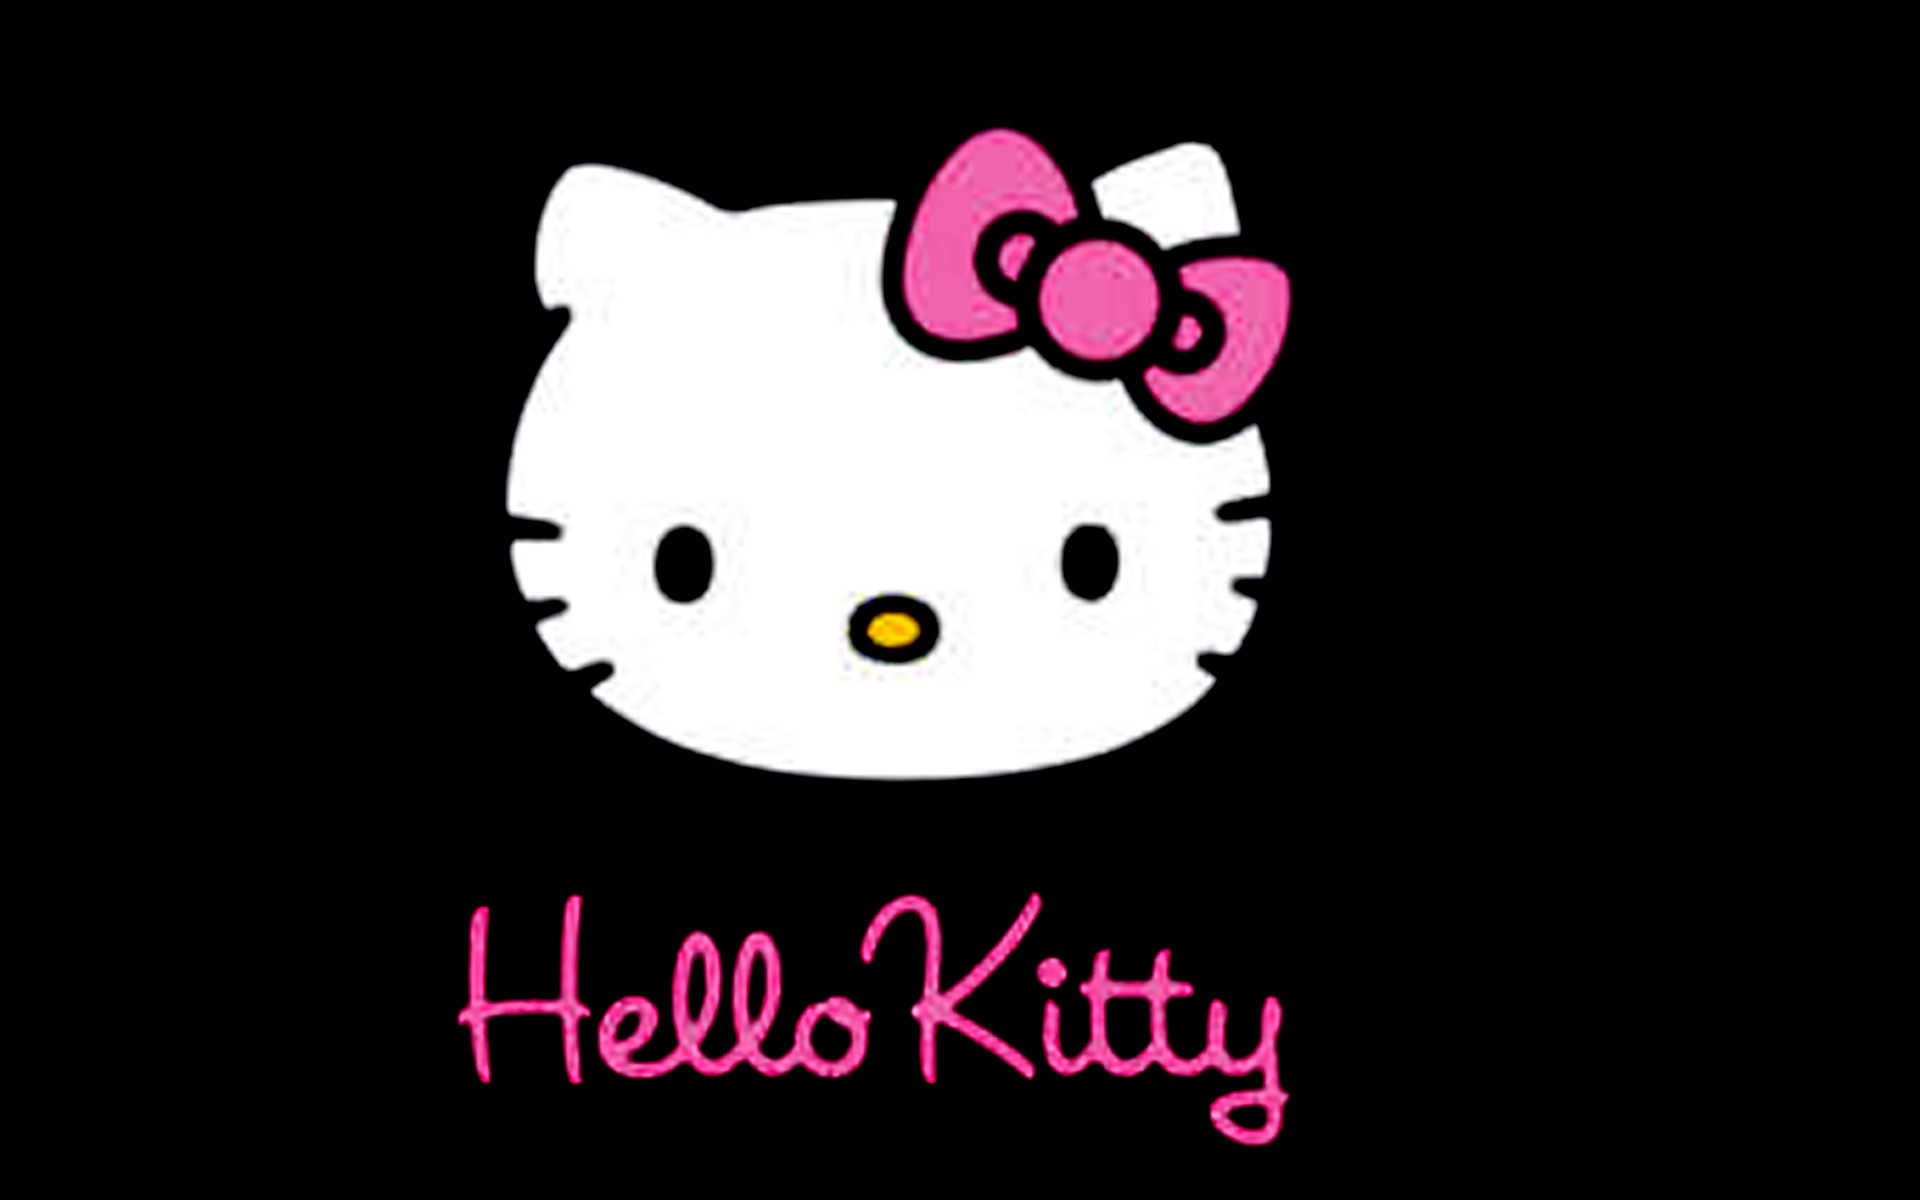 Hello Kitty Wallpapers - Full HD wallpaper search